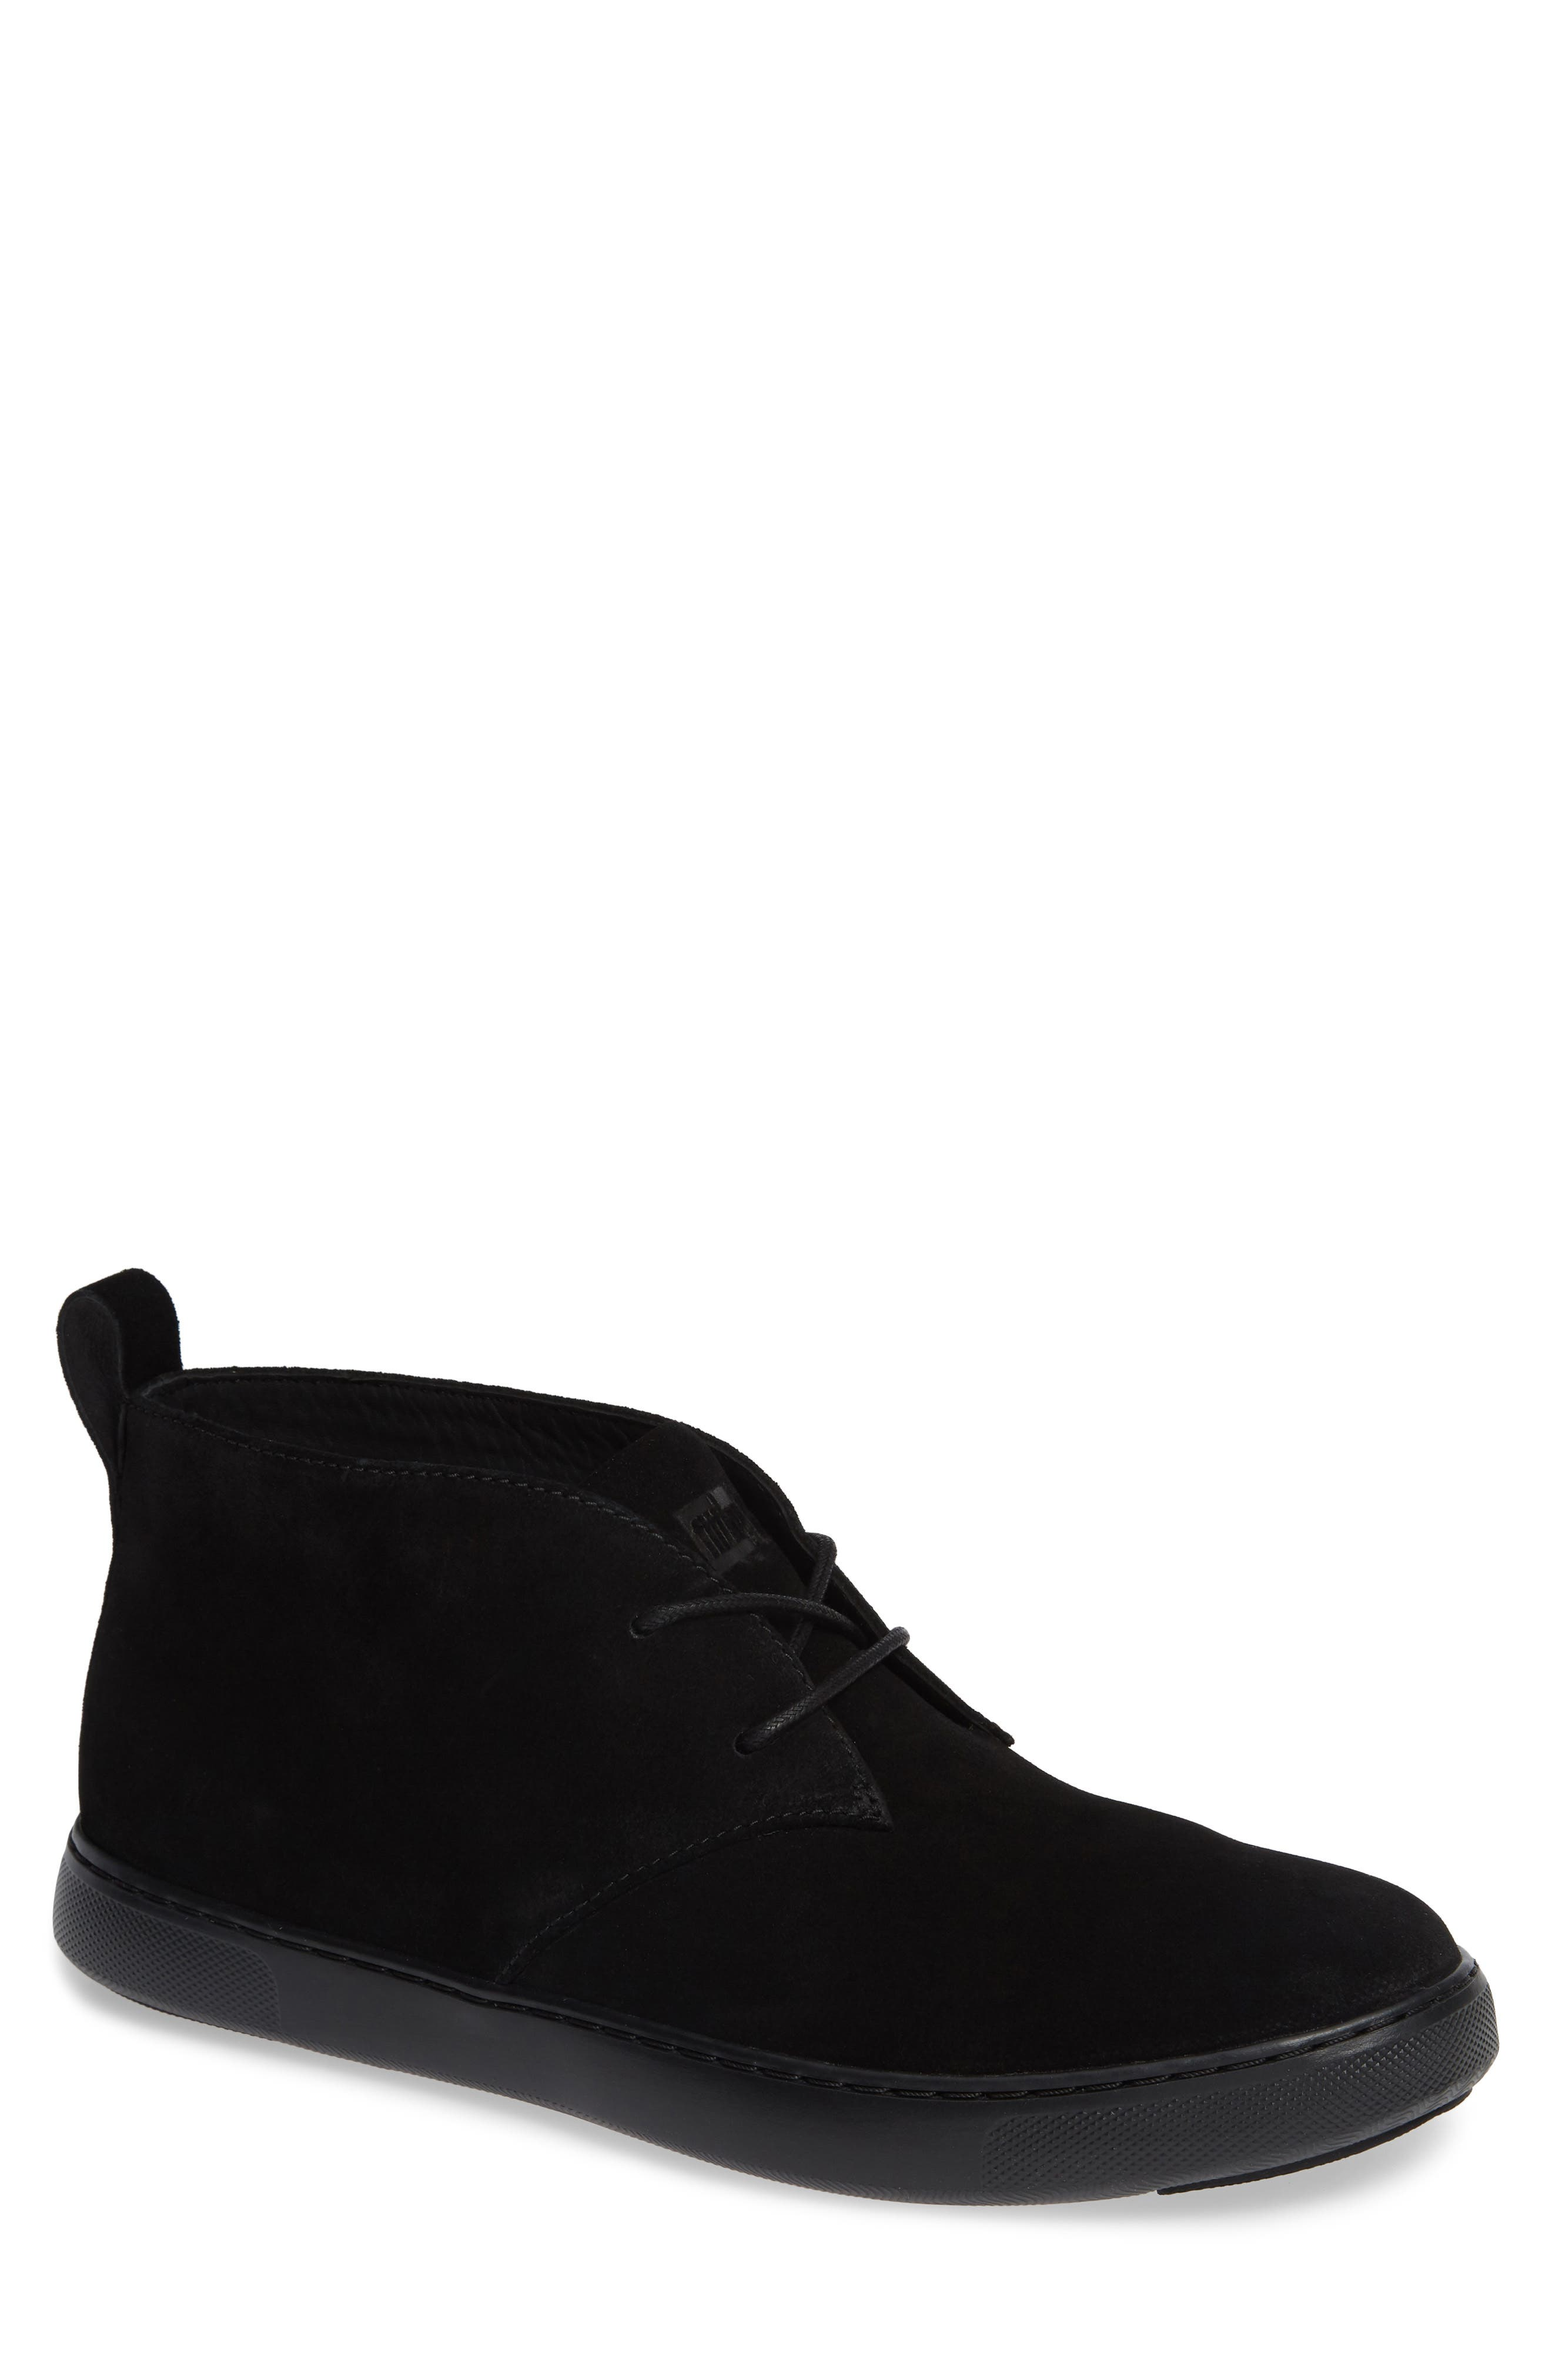 Zackery Chukka Boot,                             Main thumbnail 1, color,                             001